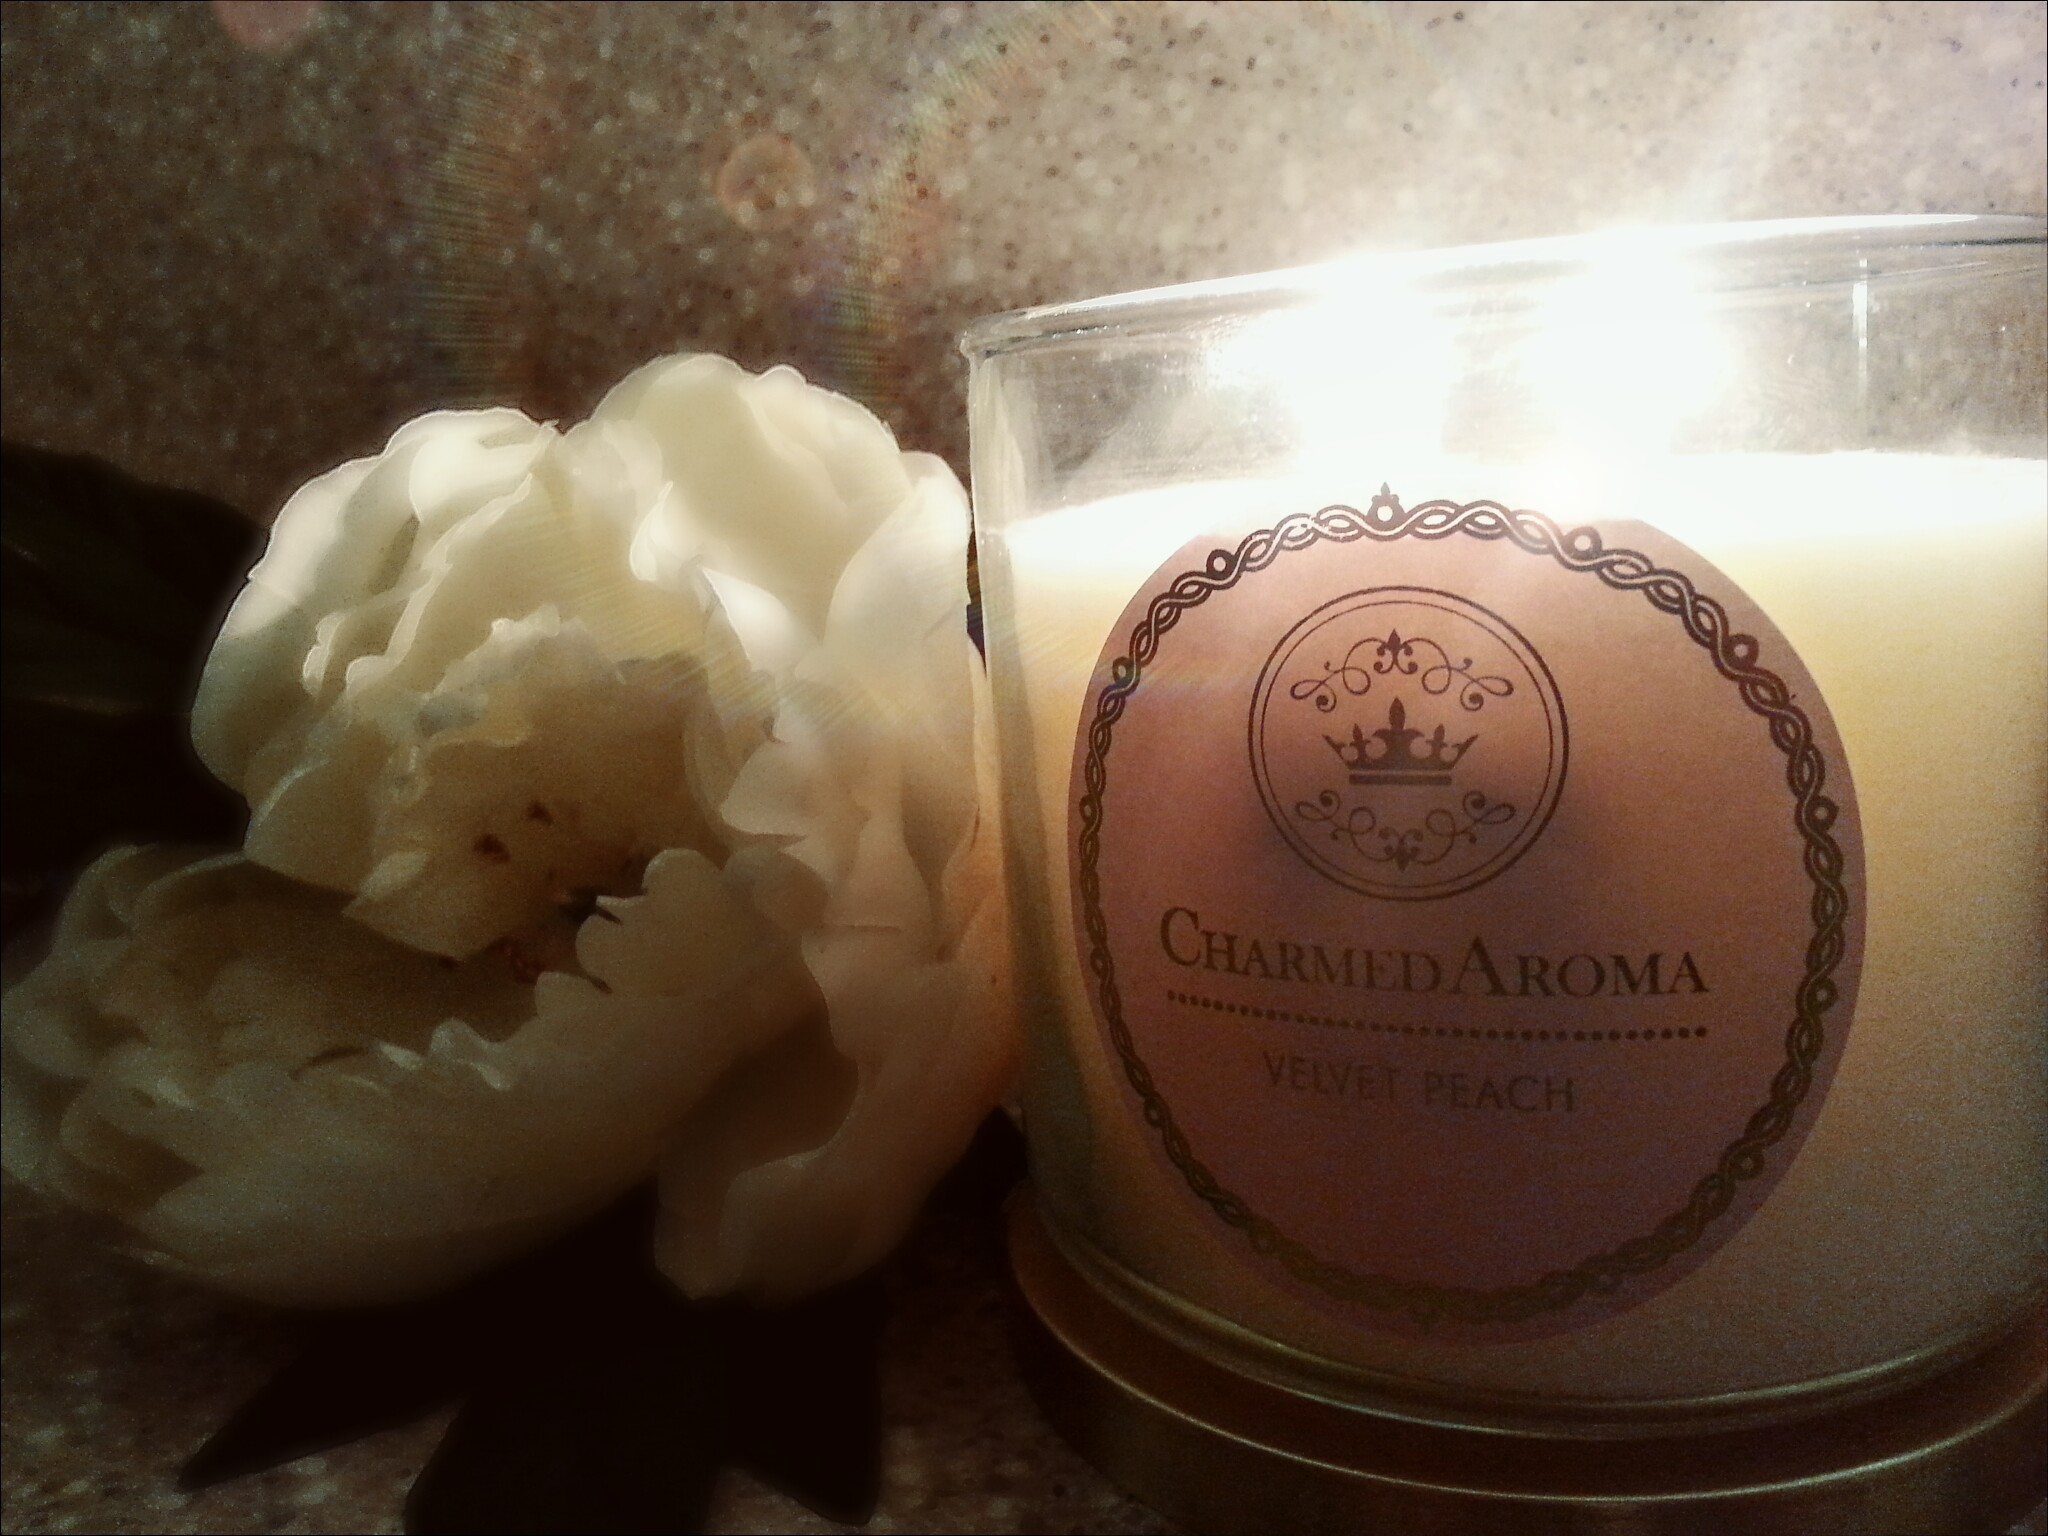 charmed review Charmed aroma 815k likes uncover jewelry worth up to $5,000 in our luxe candles and beauty care products #seekyoursurprise add us on snap for sneak.